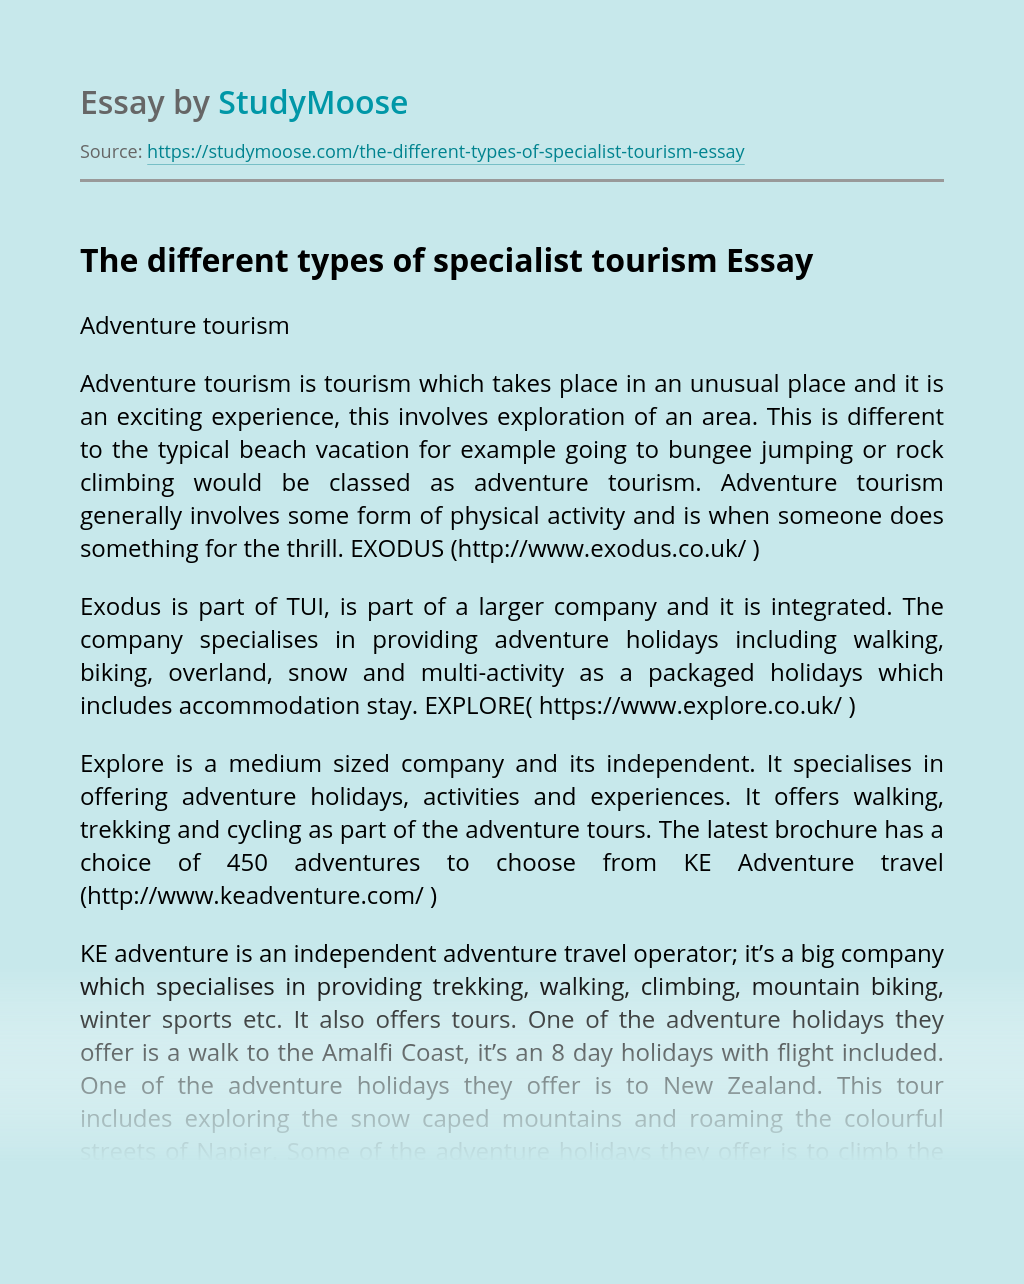 The different types of specialist tourism